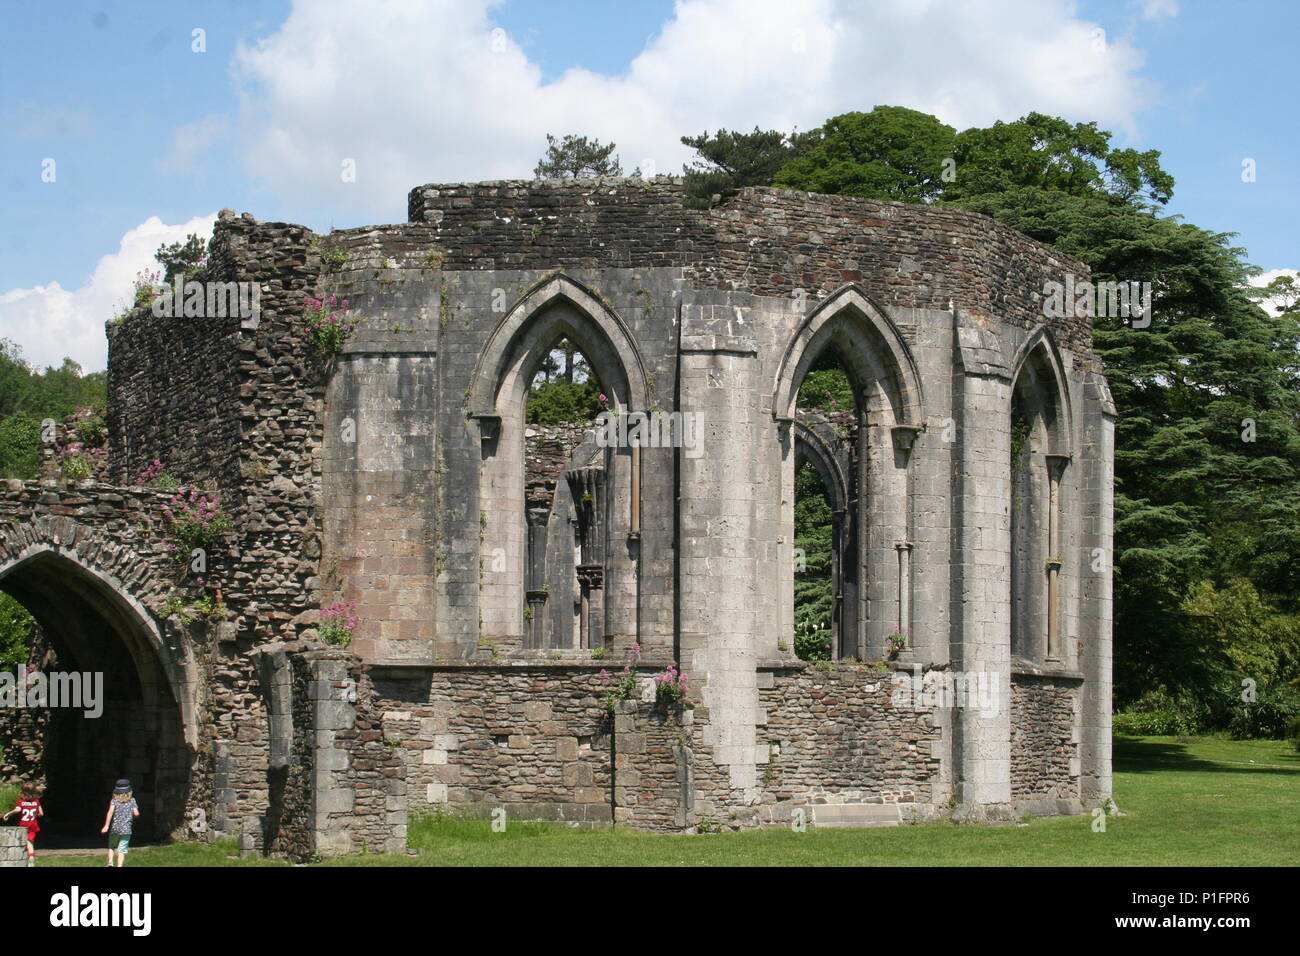 Margam country park with an industrial past and full of historical features set in 1000 acres of rolling countryside - Stock Image